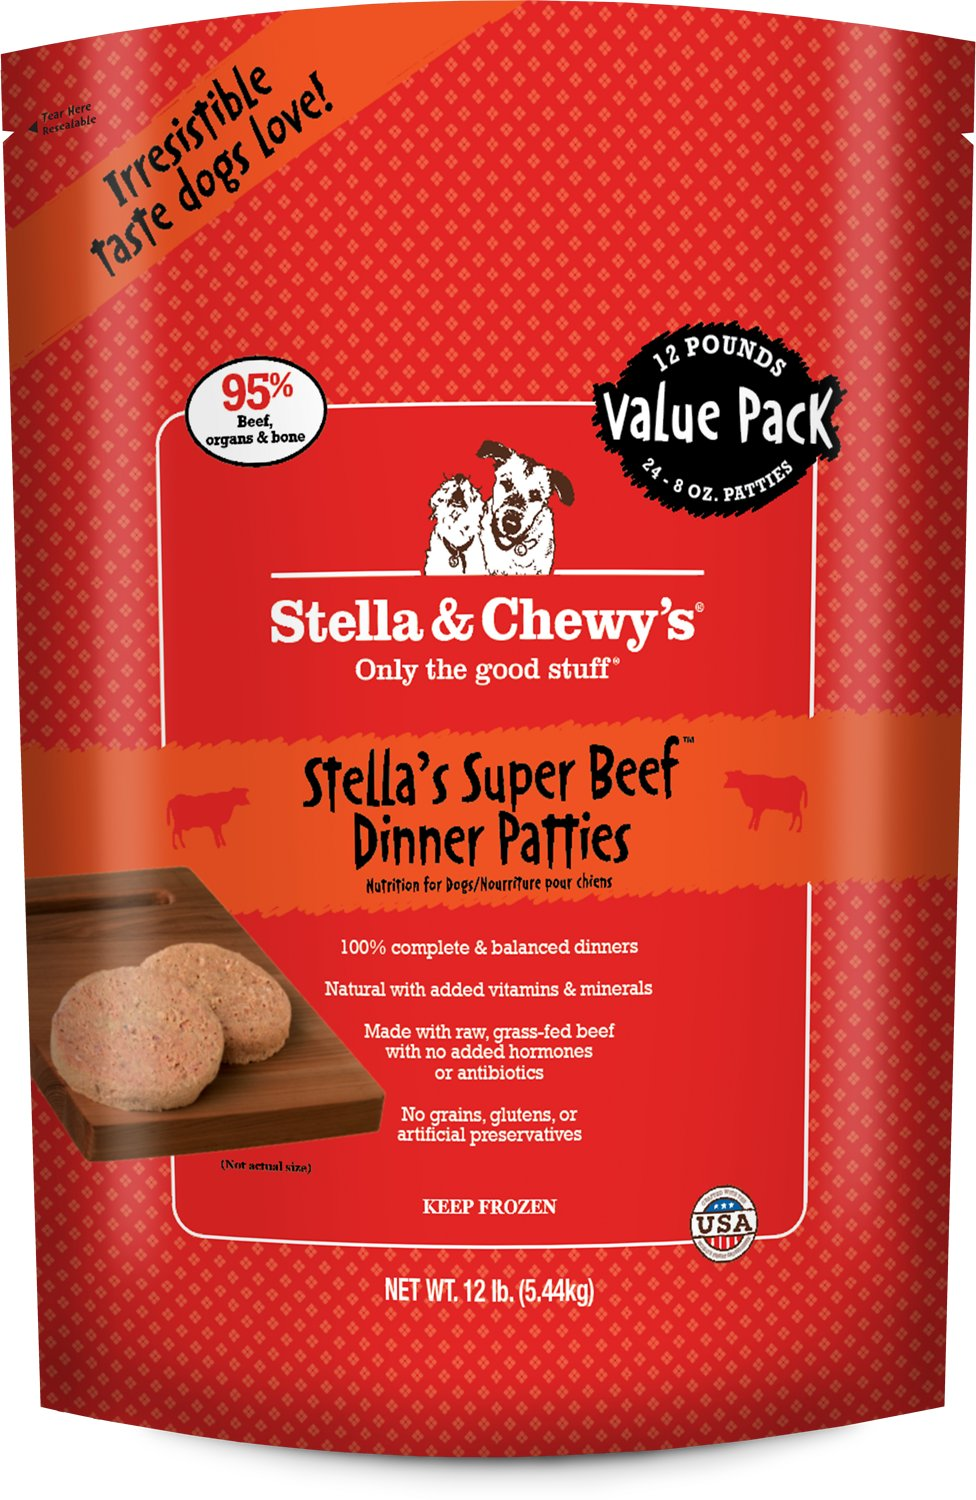 Stella & Chewy's Dog Frozen Super Beef Dinner Patties Frozen Dog Food, 12-lb (Size: 12-lb) Image